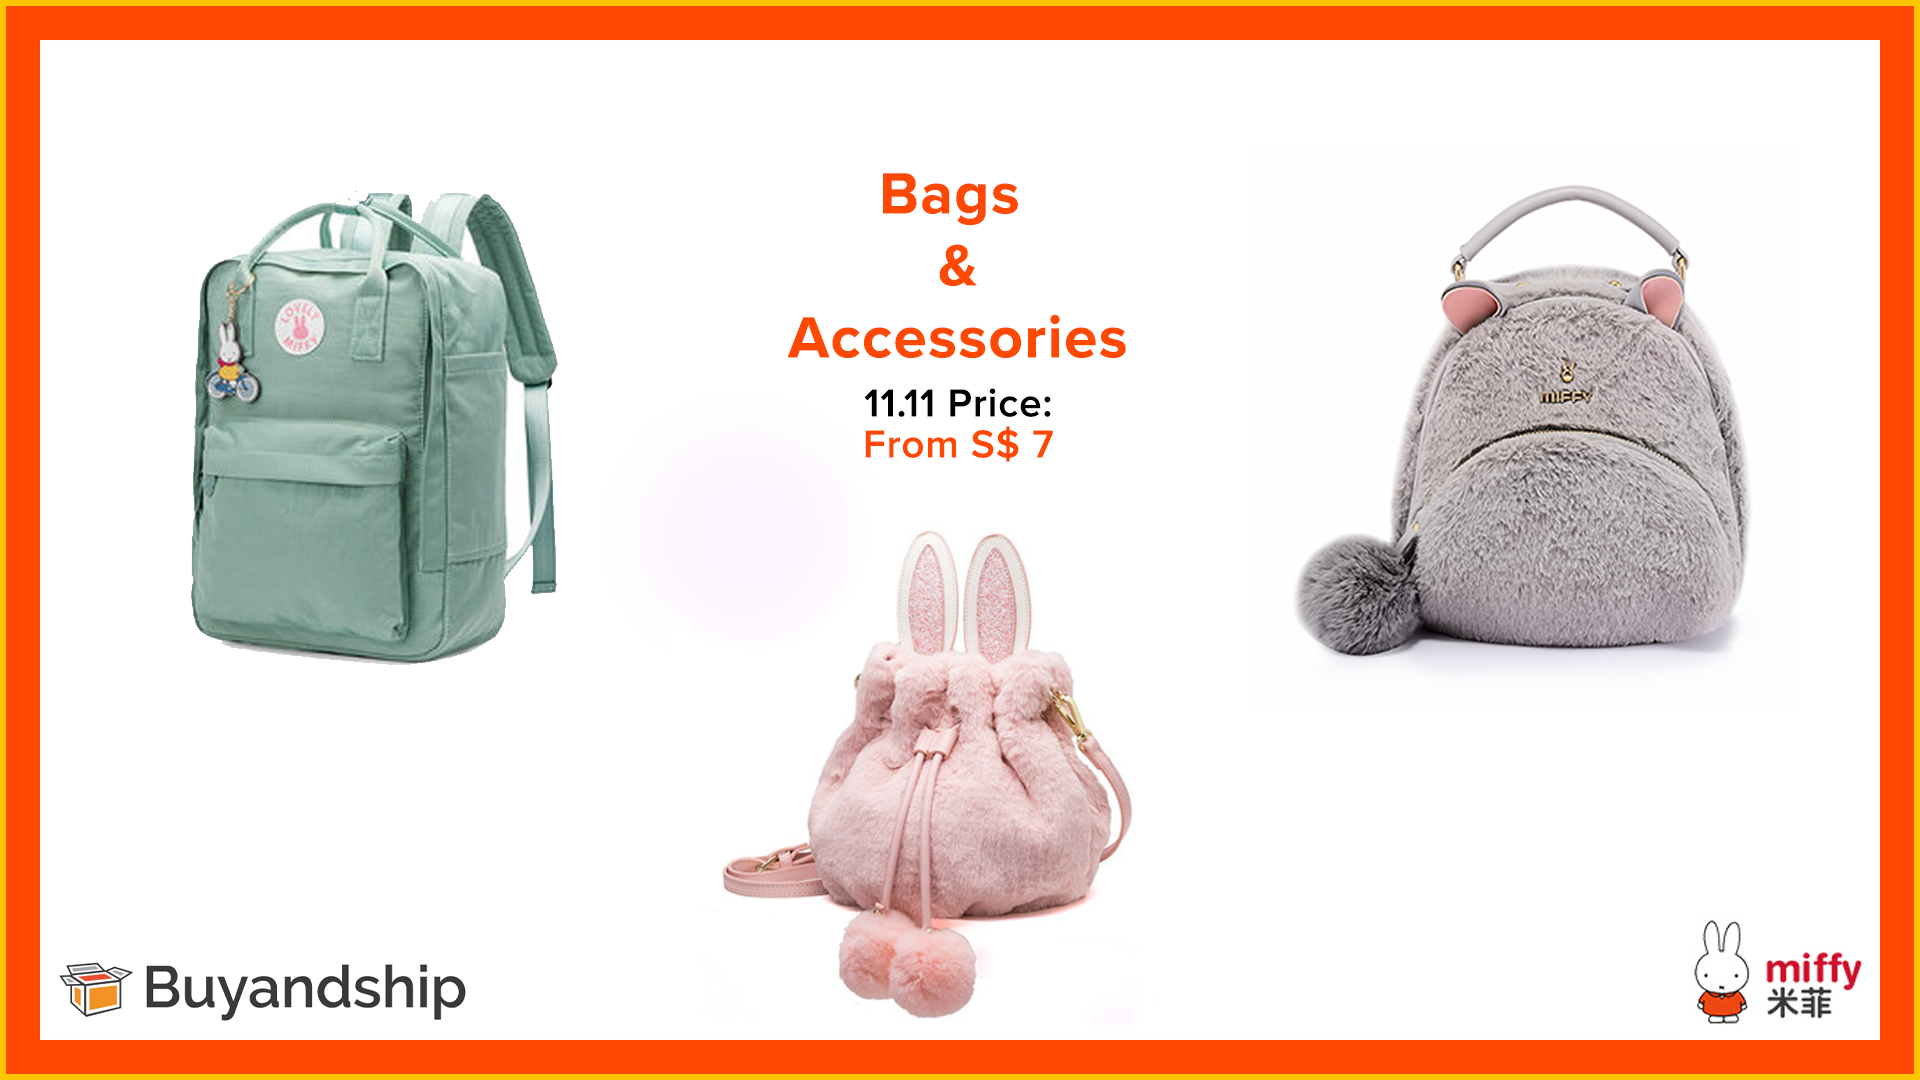 11.11 Sale 2019 - Miffy Luggage Store